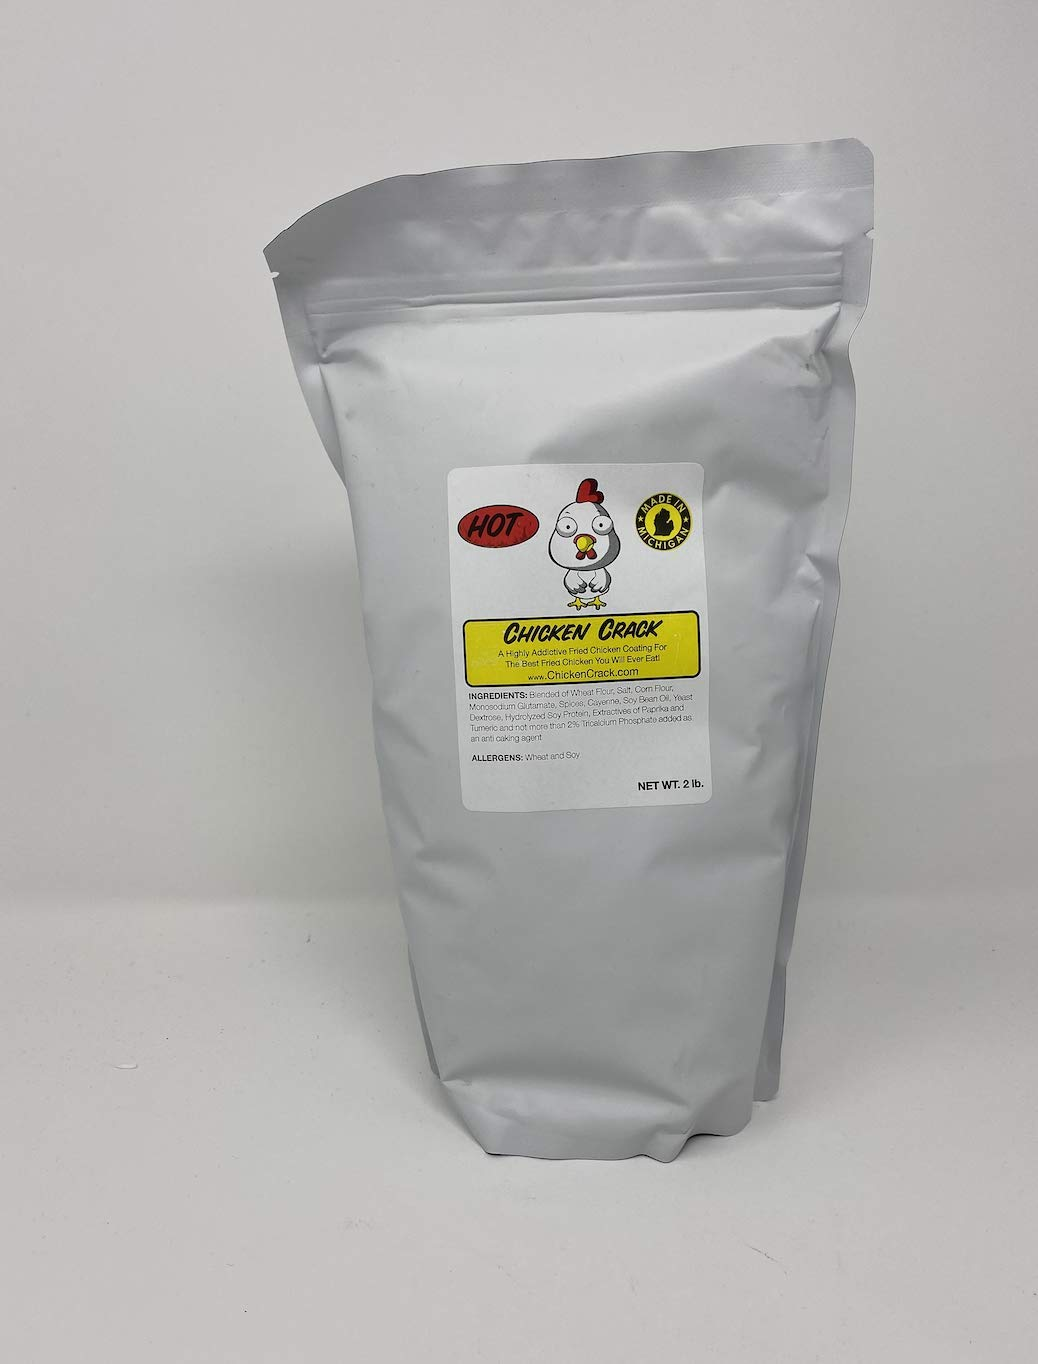 Chicken Crack Hot and Spicy Fried Chicken Coating, Large 2 Pound Bag